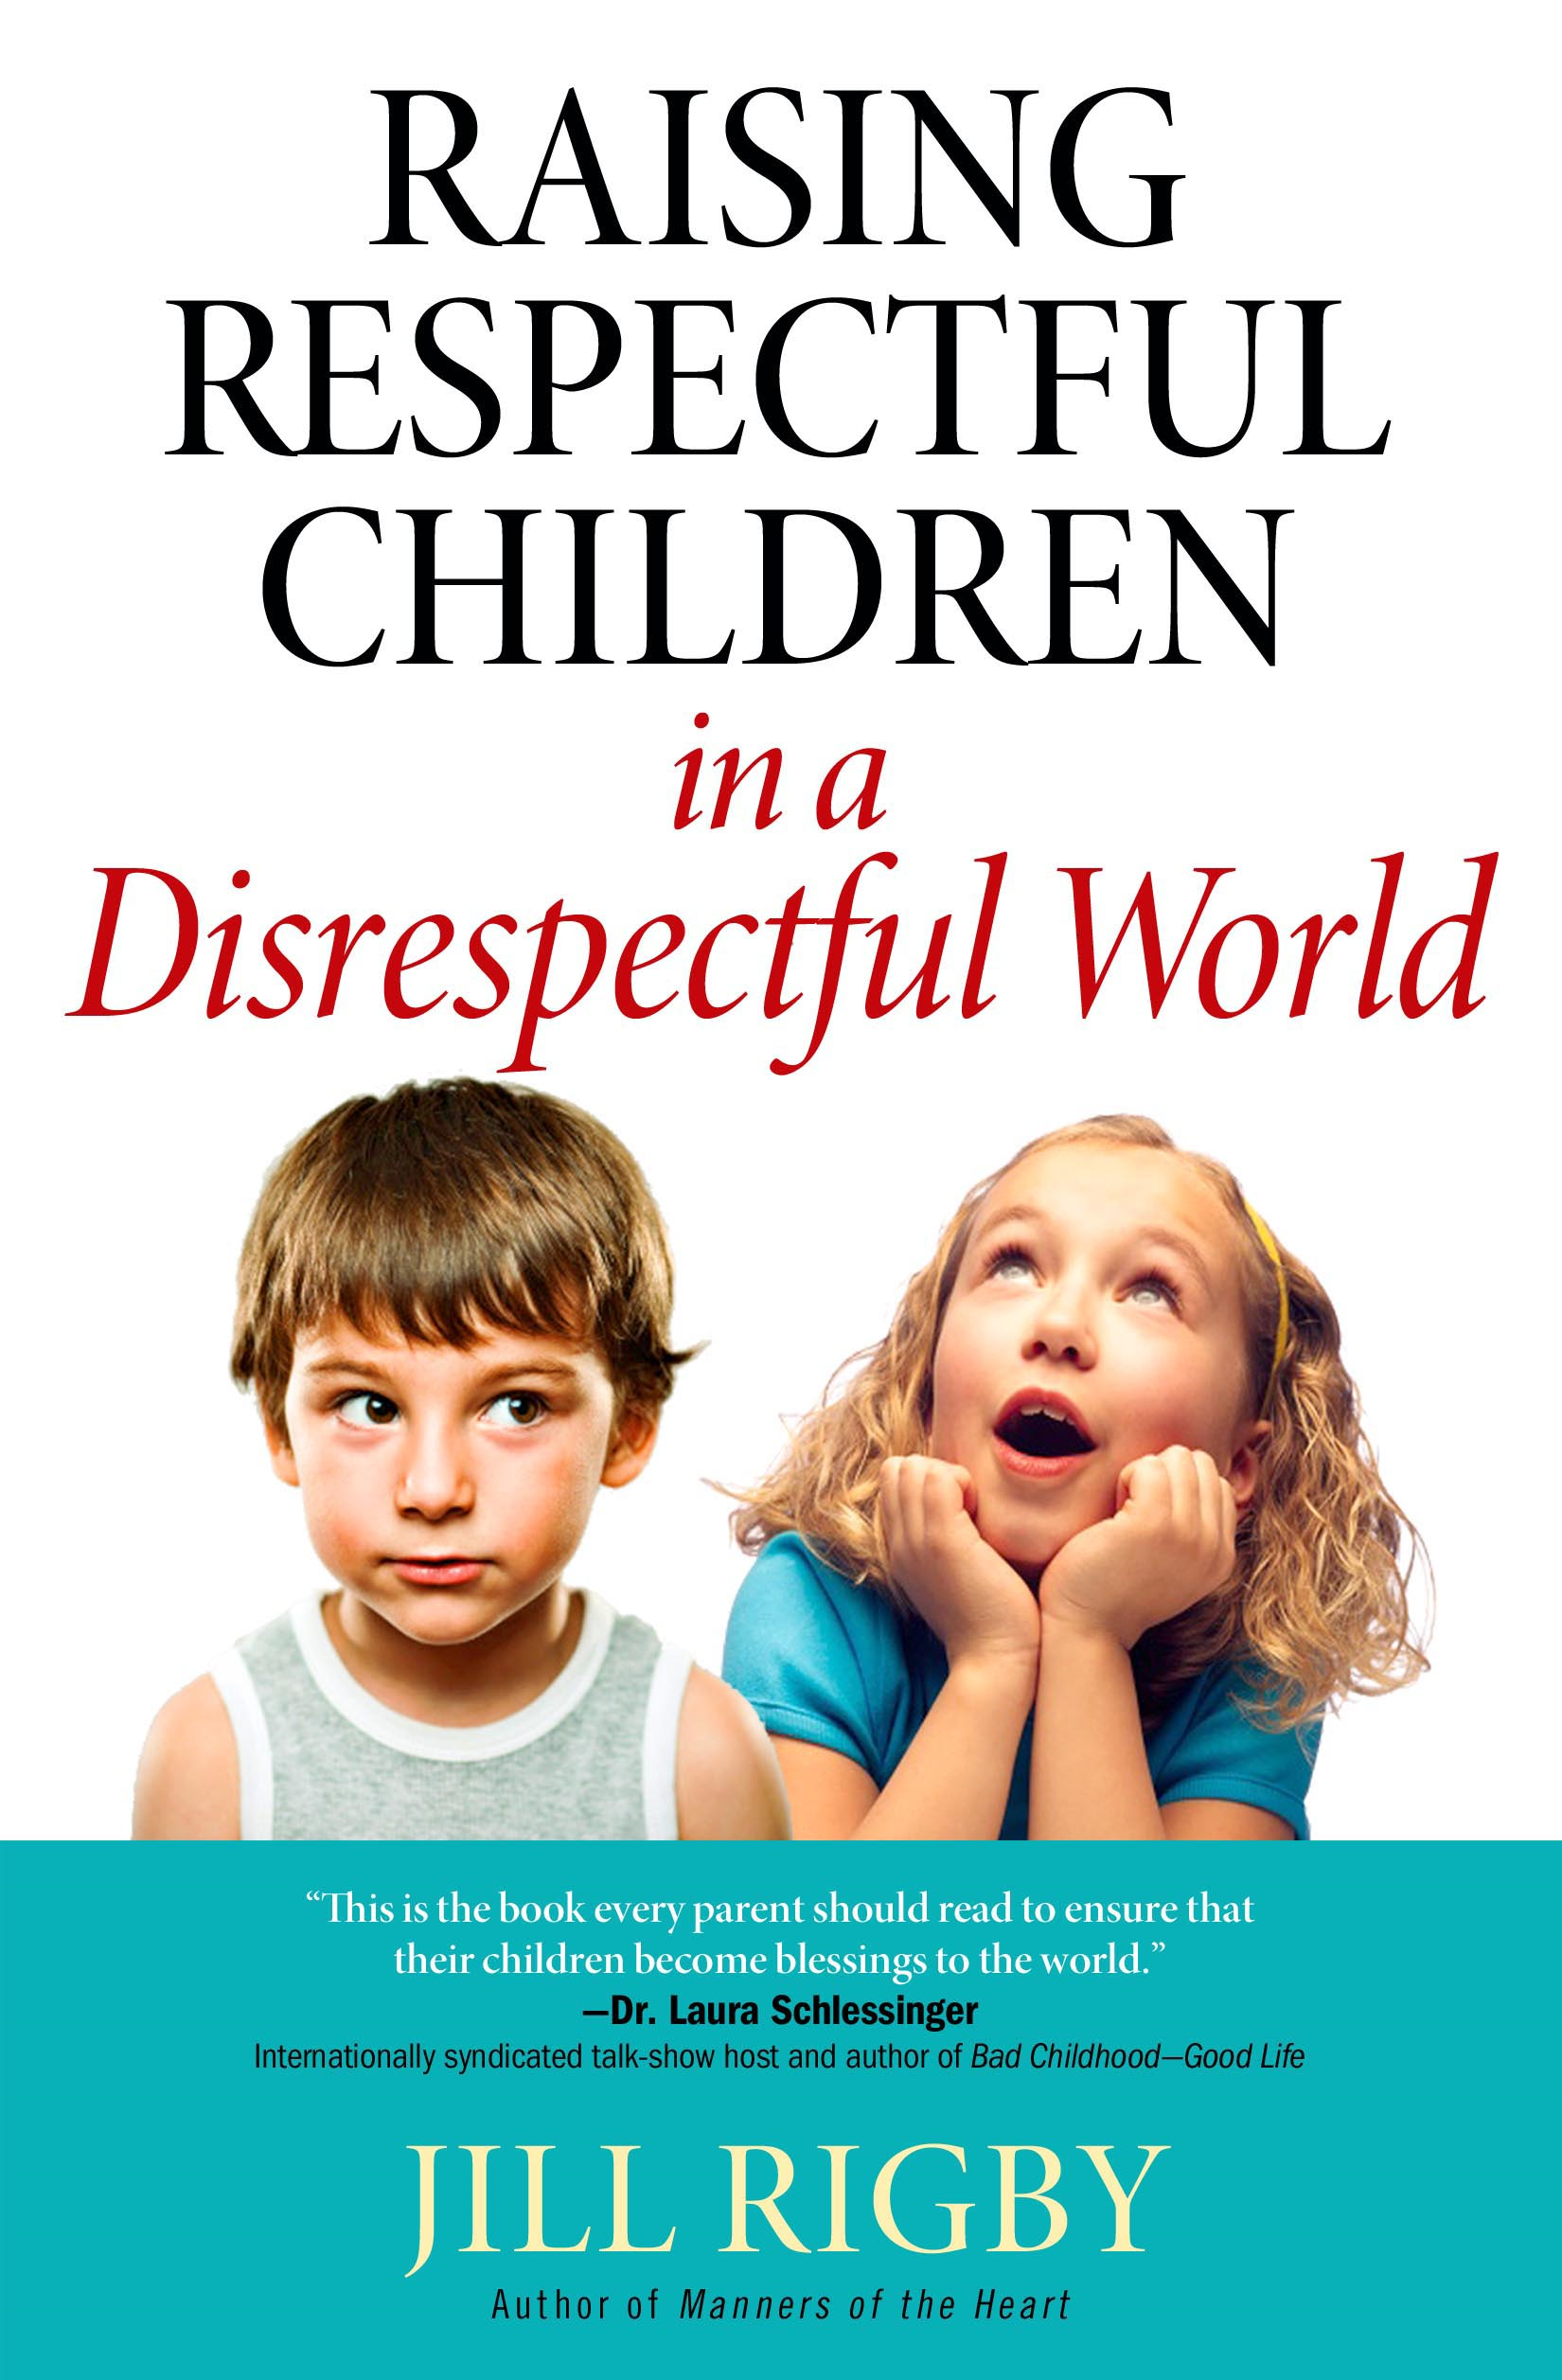 Raising Respectful Children in a Disrespectful World By: Jill Rigby